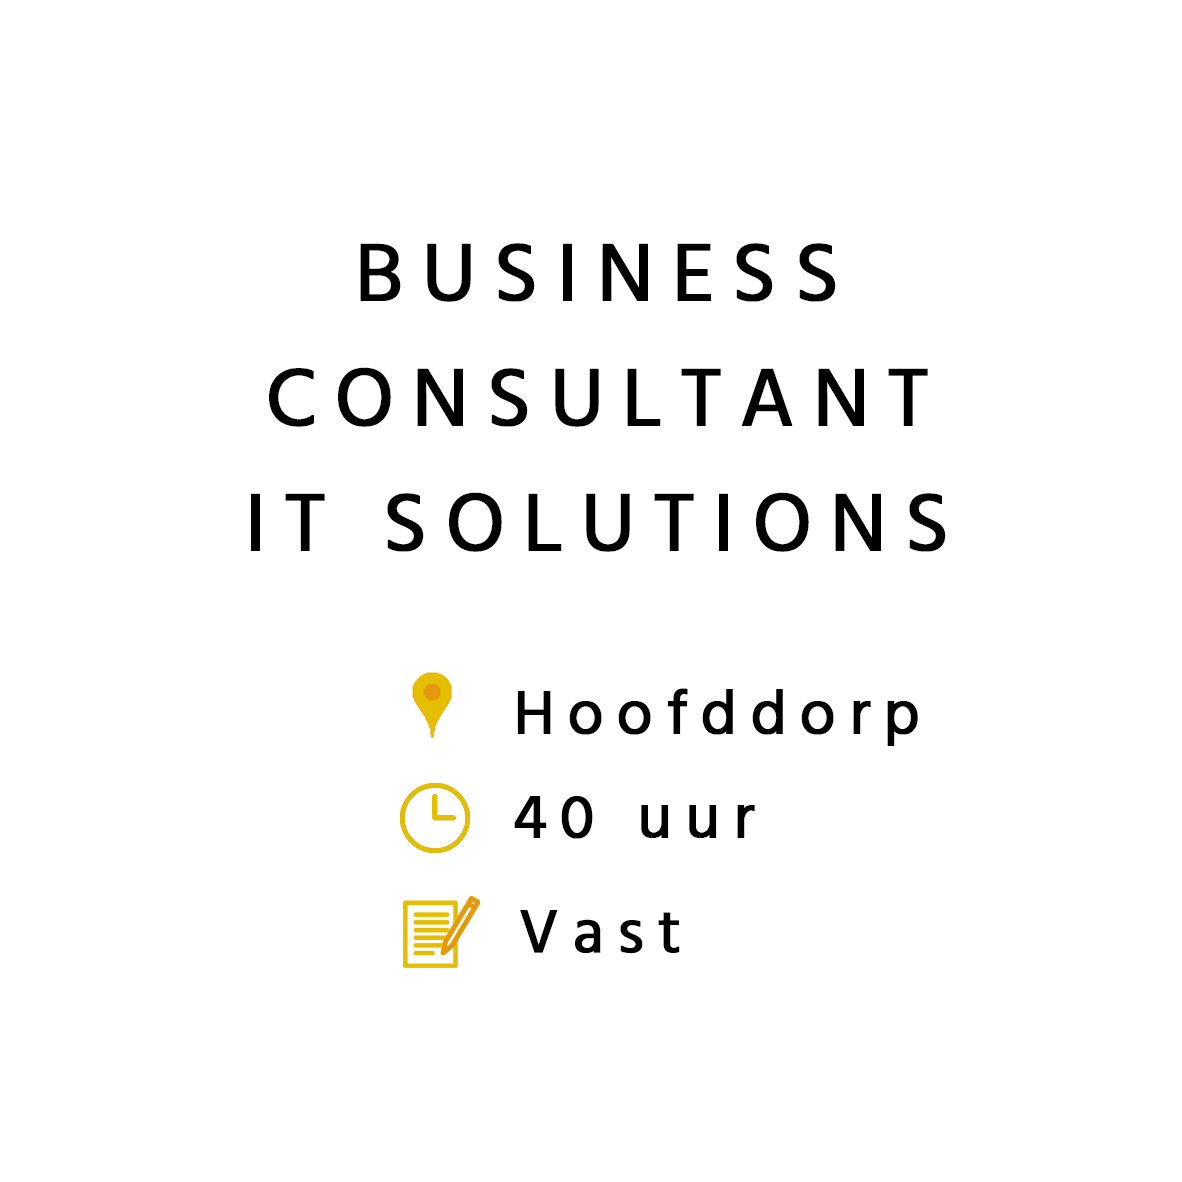 Business Consultant IT Solutions